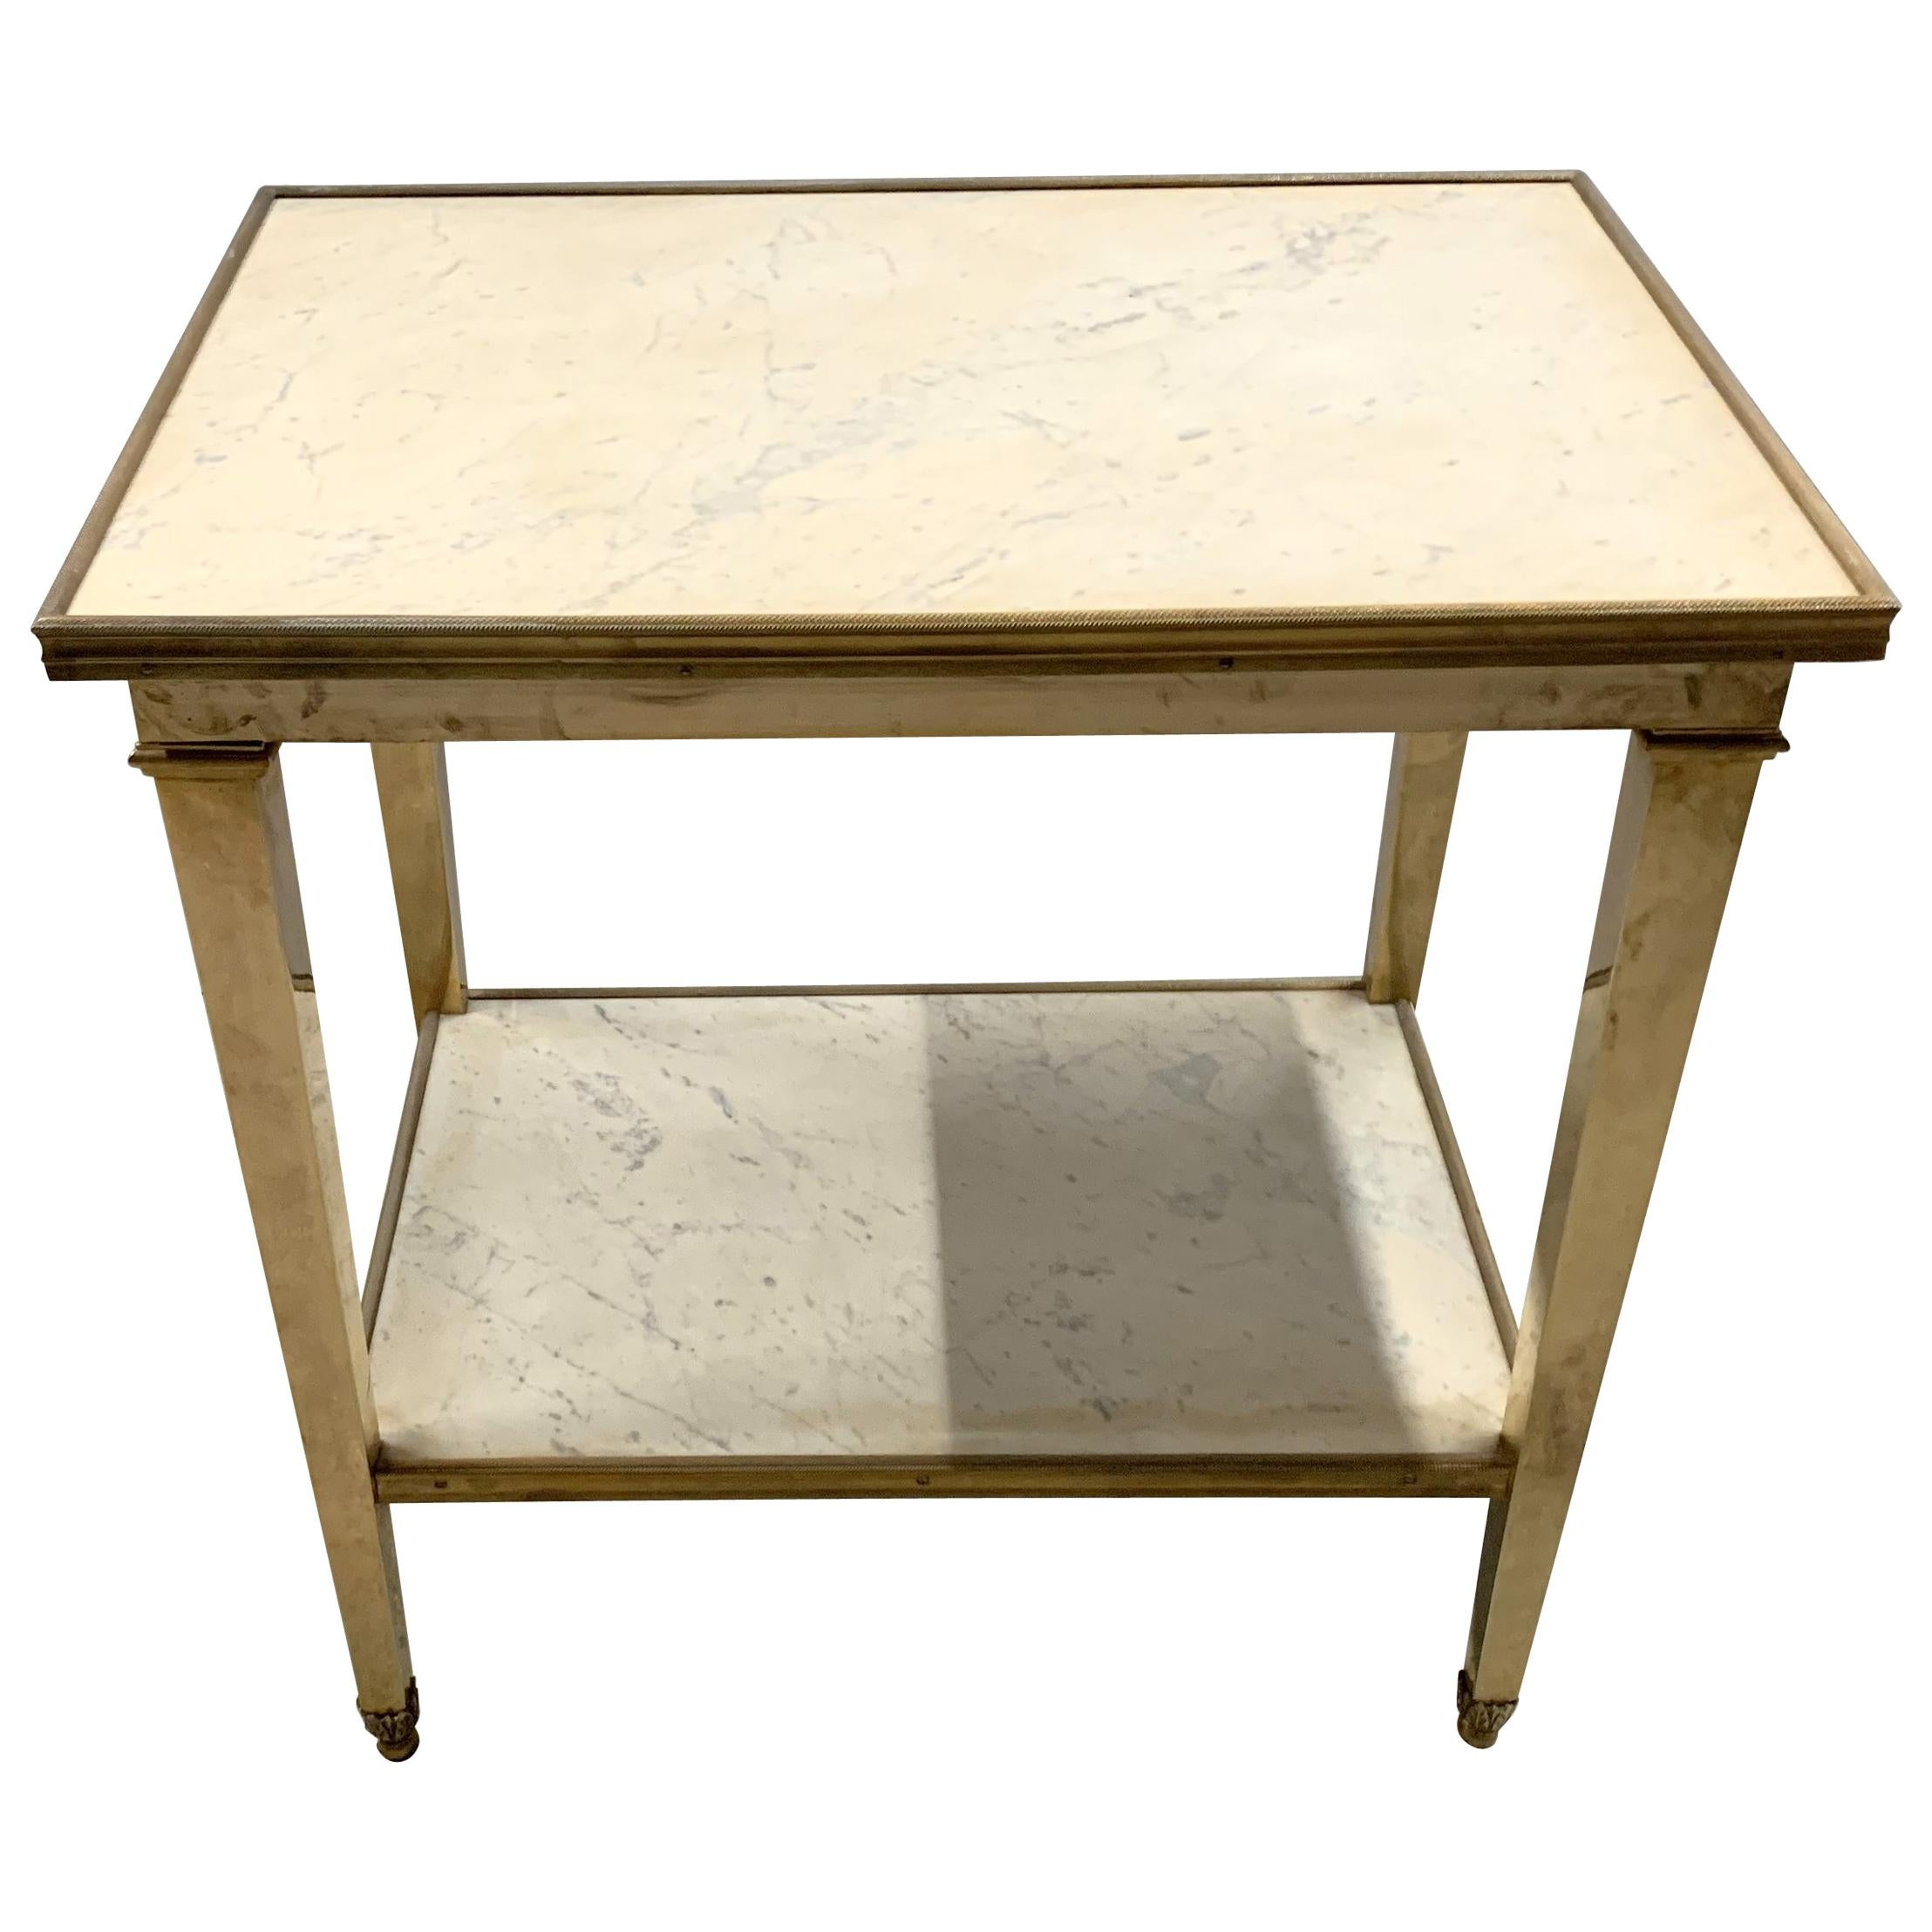 Wonderful Neoclassical French Gilt Bronze Marble Two-Tier Gueridon End Table